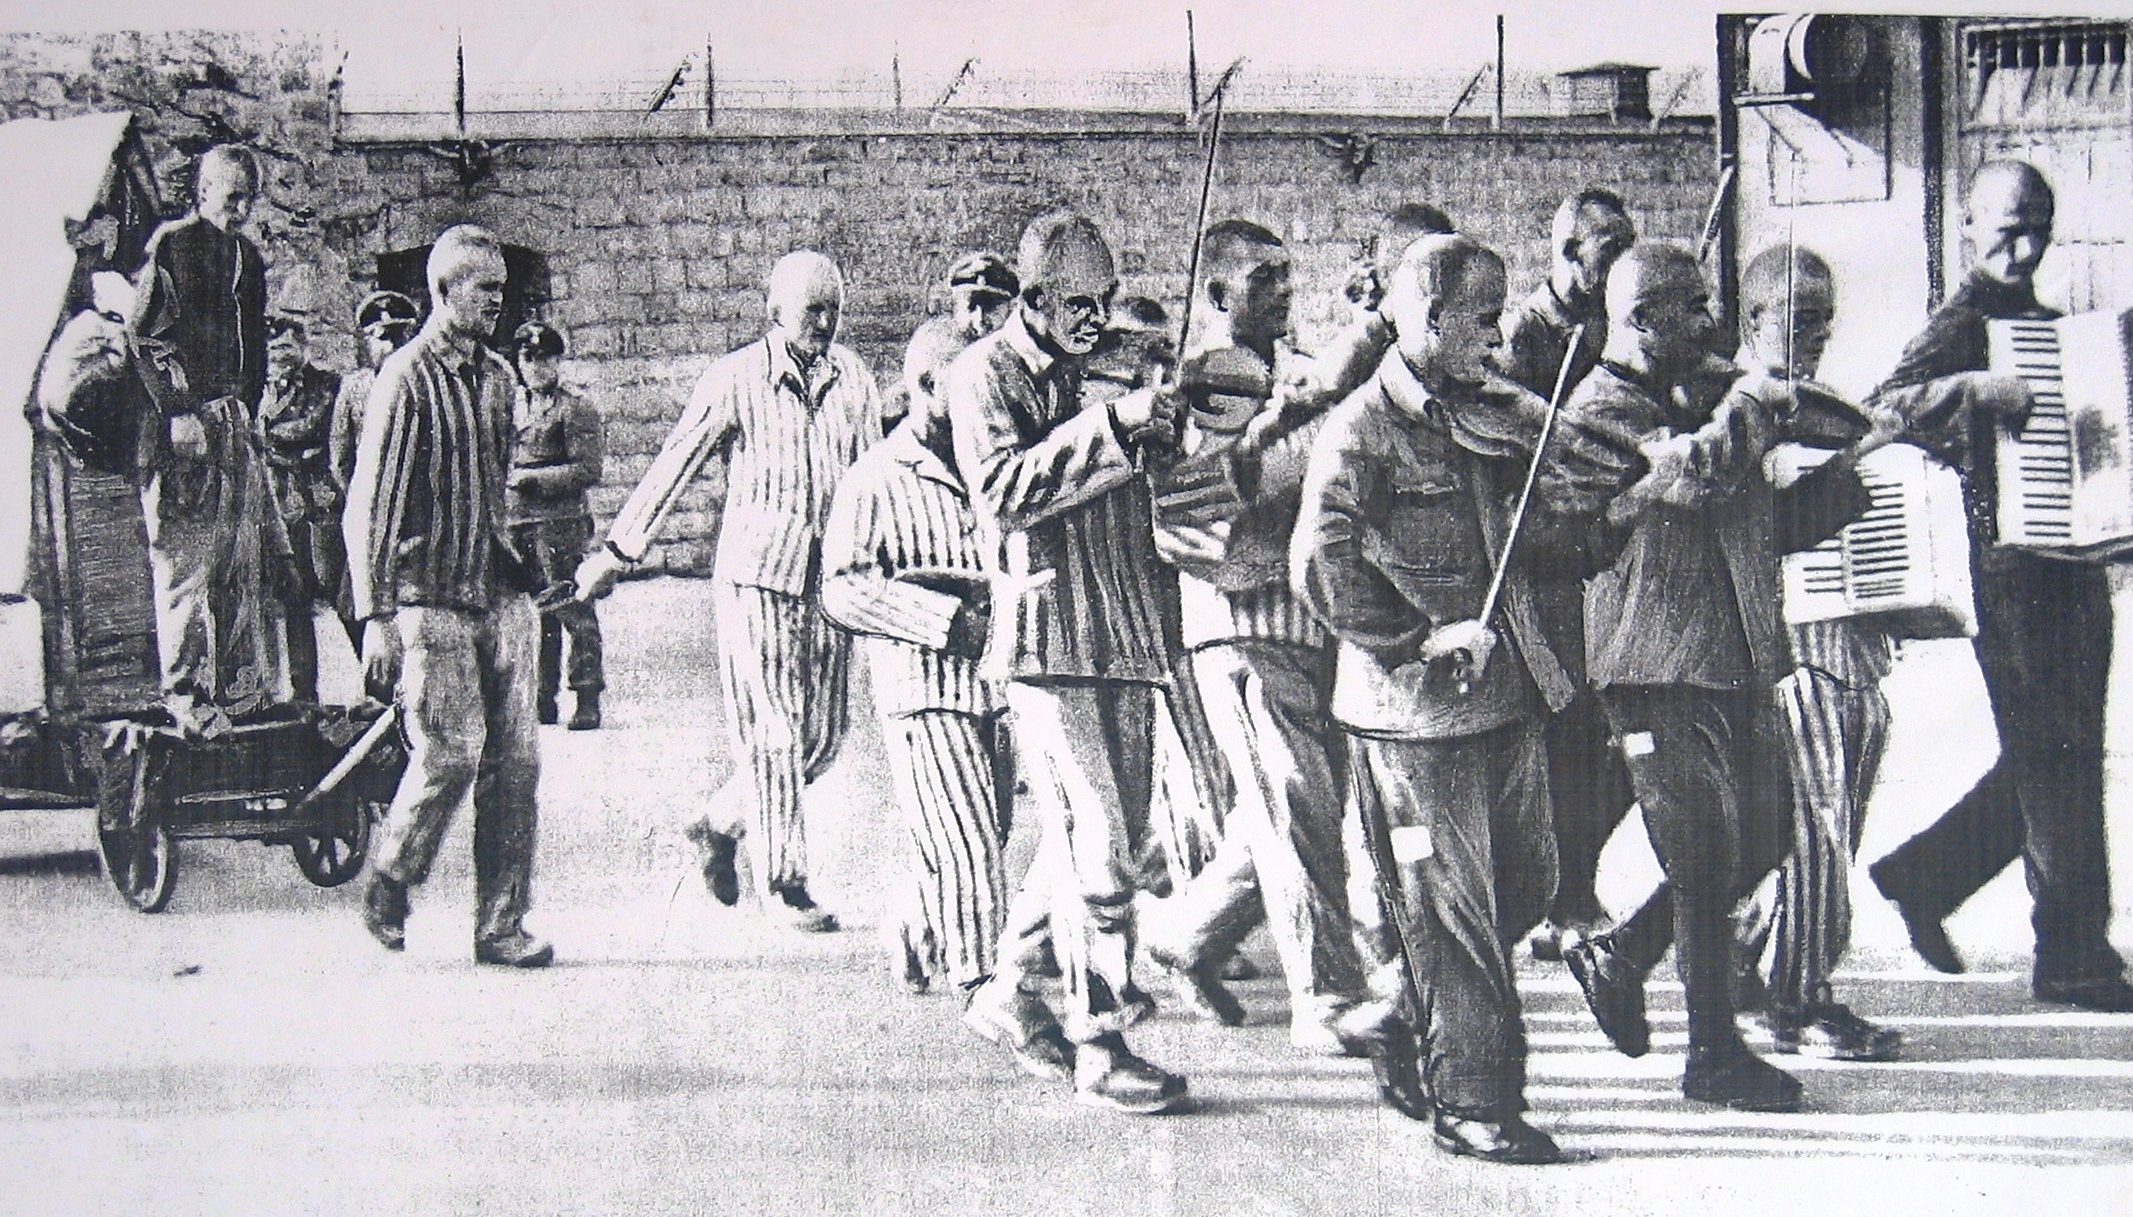 Prisoner escorted to execution by camp orchestra.